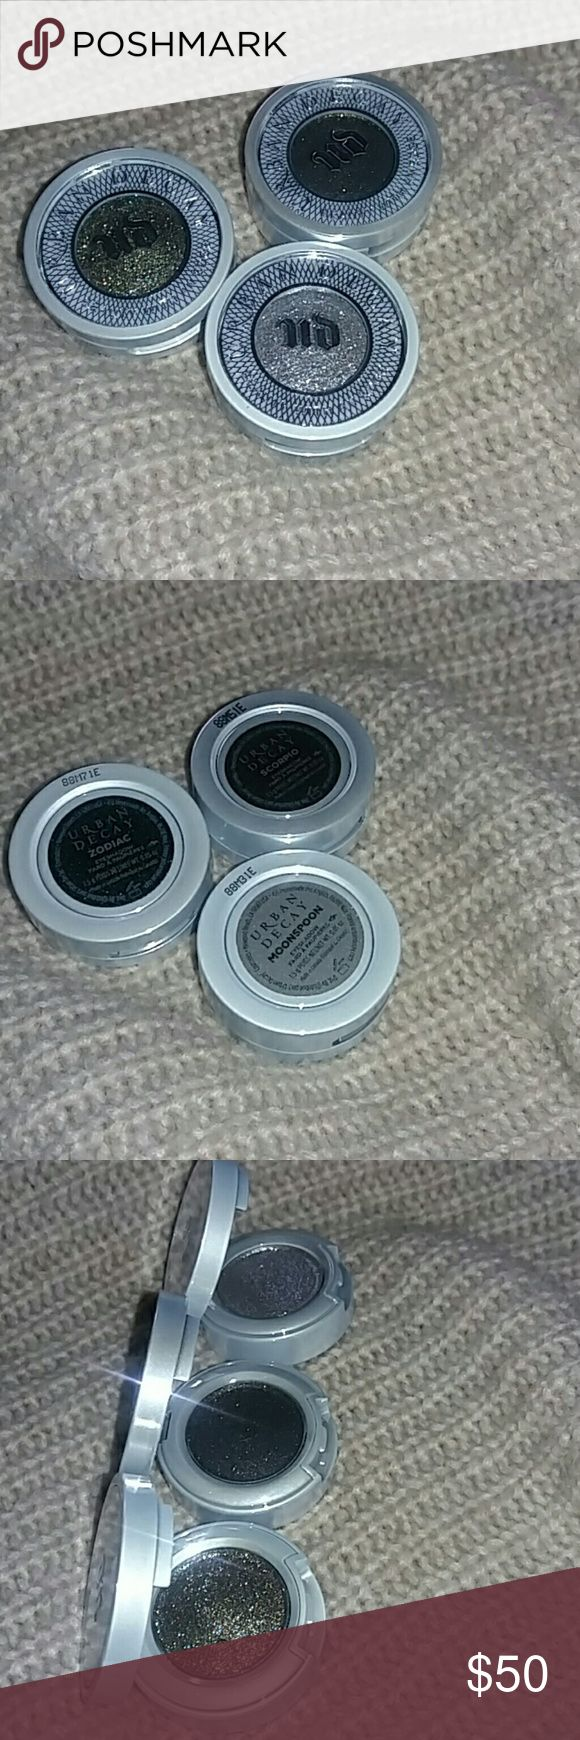 Bundle of 3 Urban Decay Moondust Eyeshadows Brand New without Box Urban Decay Single Moondust Eyeshadows. These are extremely pigmented and georgeous. It can transform any look from basic to glam! ??Included in the bundle are 3 beautiful shades Moonspoon, Zodiac & Scorpio. No Trades! 100% Authentic! Price Firm! Urban Decay Makeup Eyeshadow